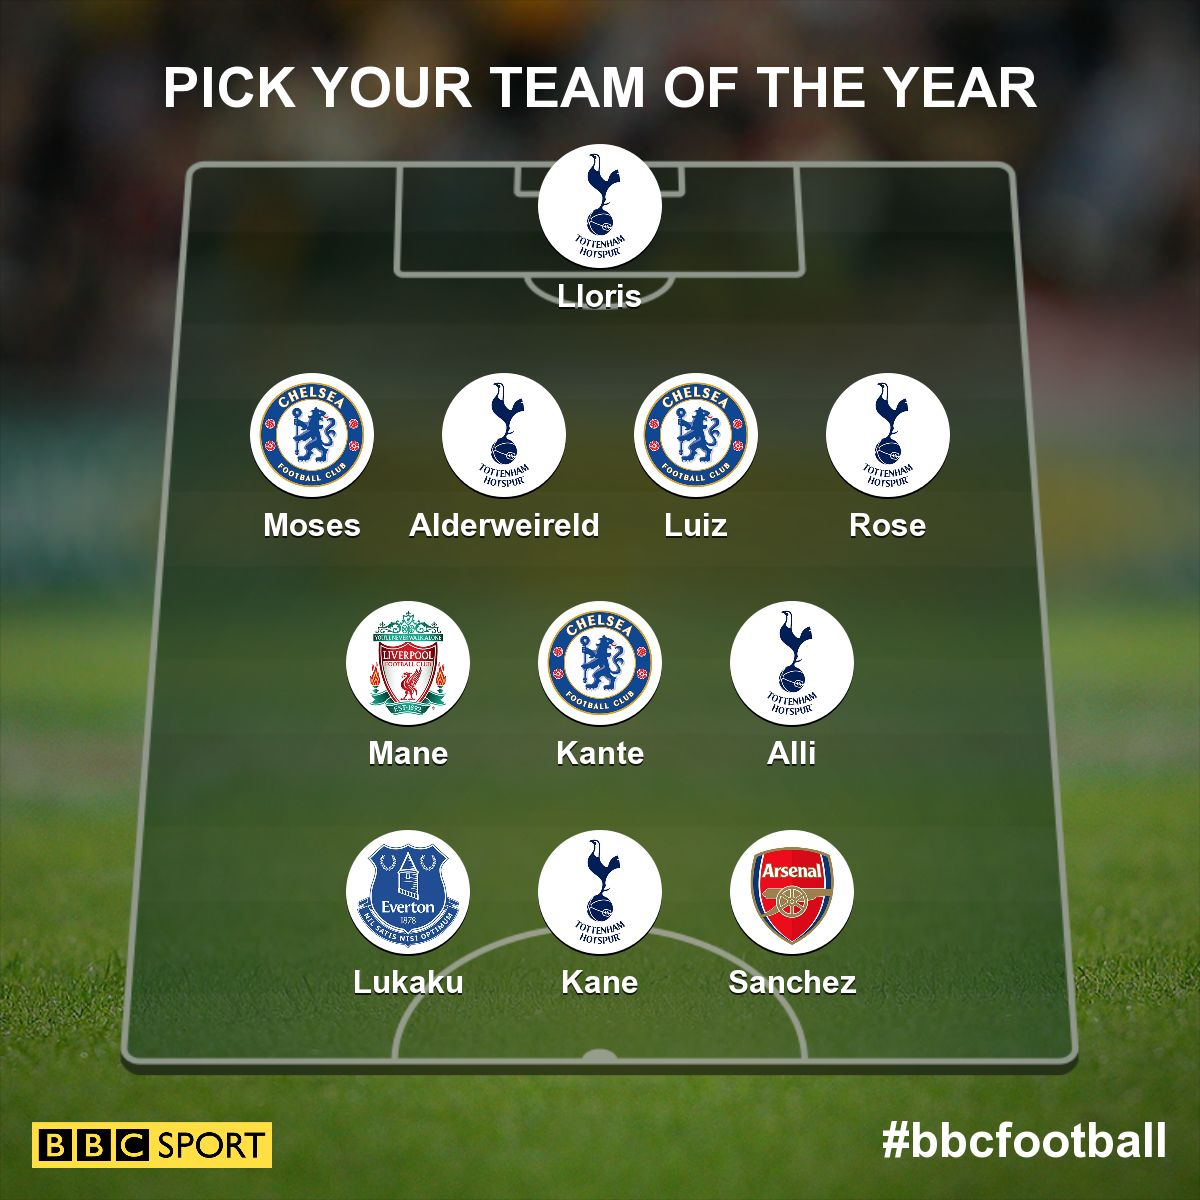 premier-league-team-of-the-year-c5099383c76f01e27485d1f5e0596f44